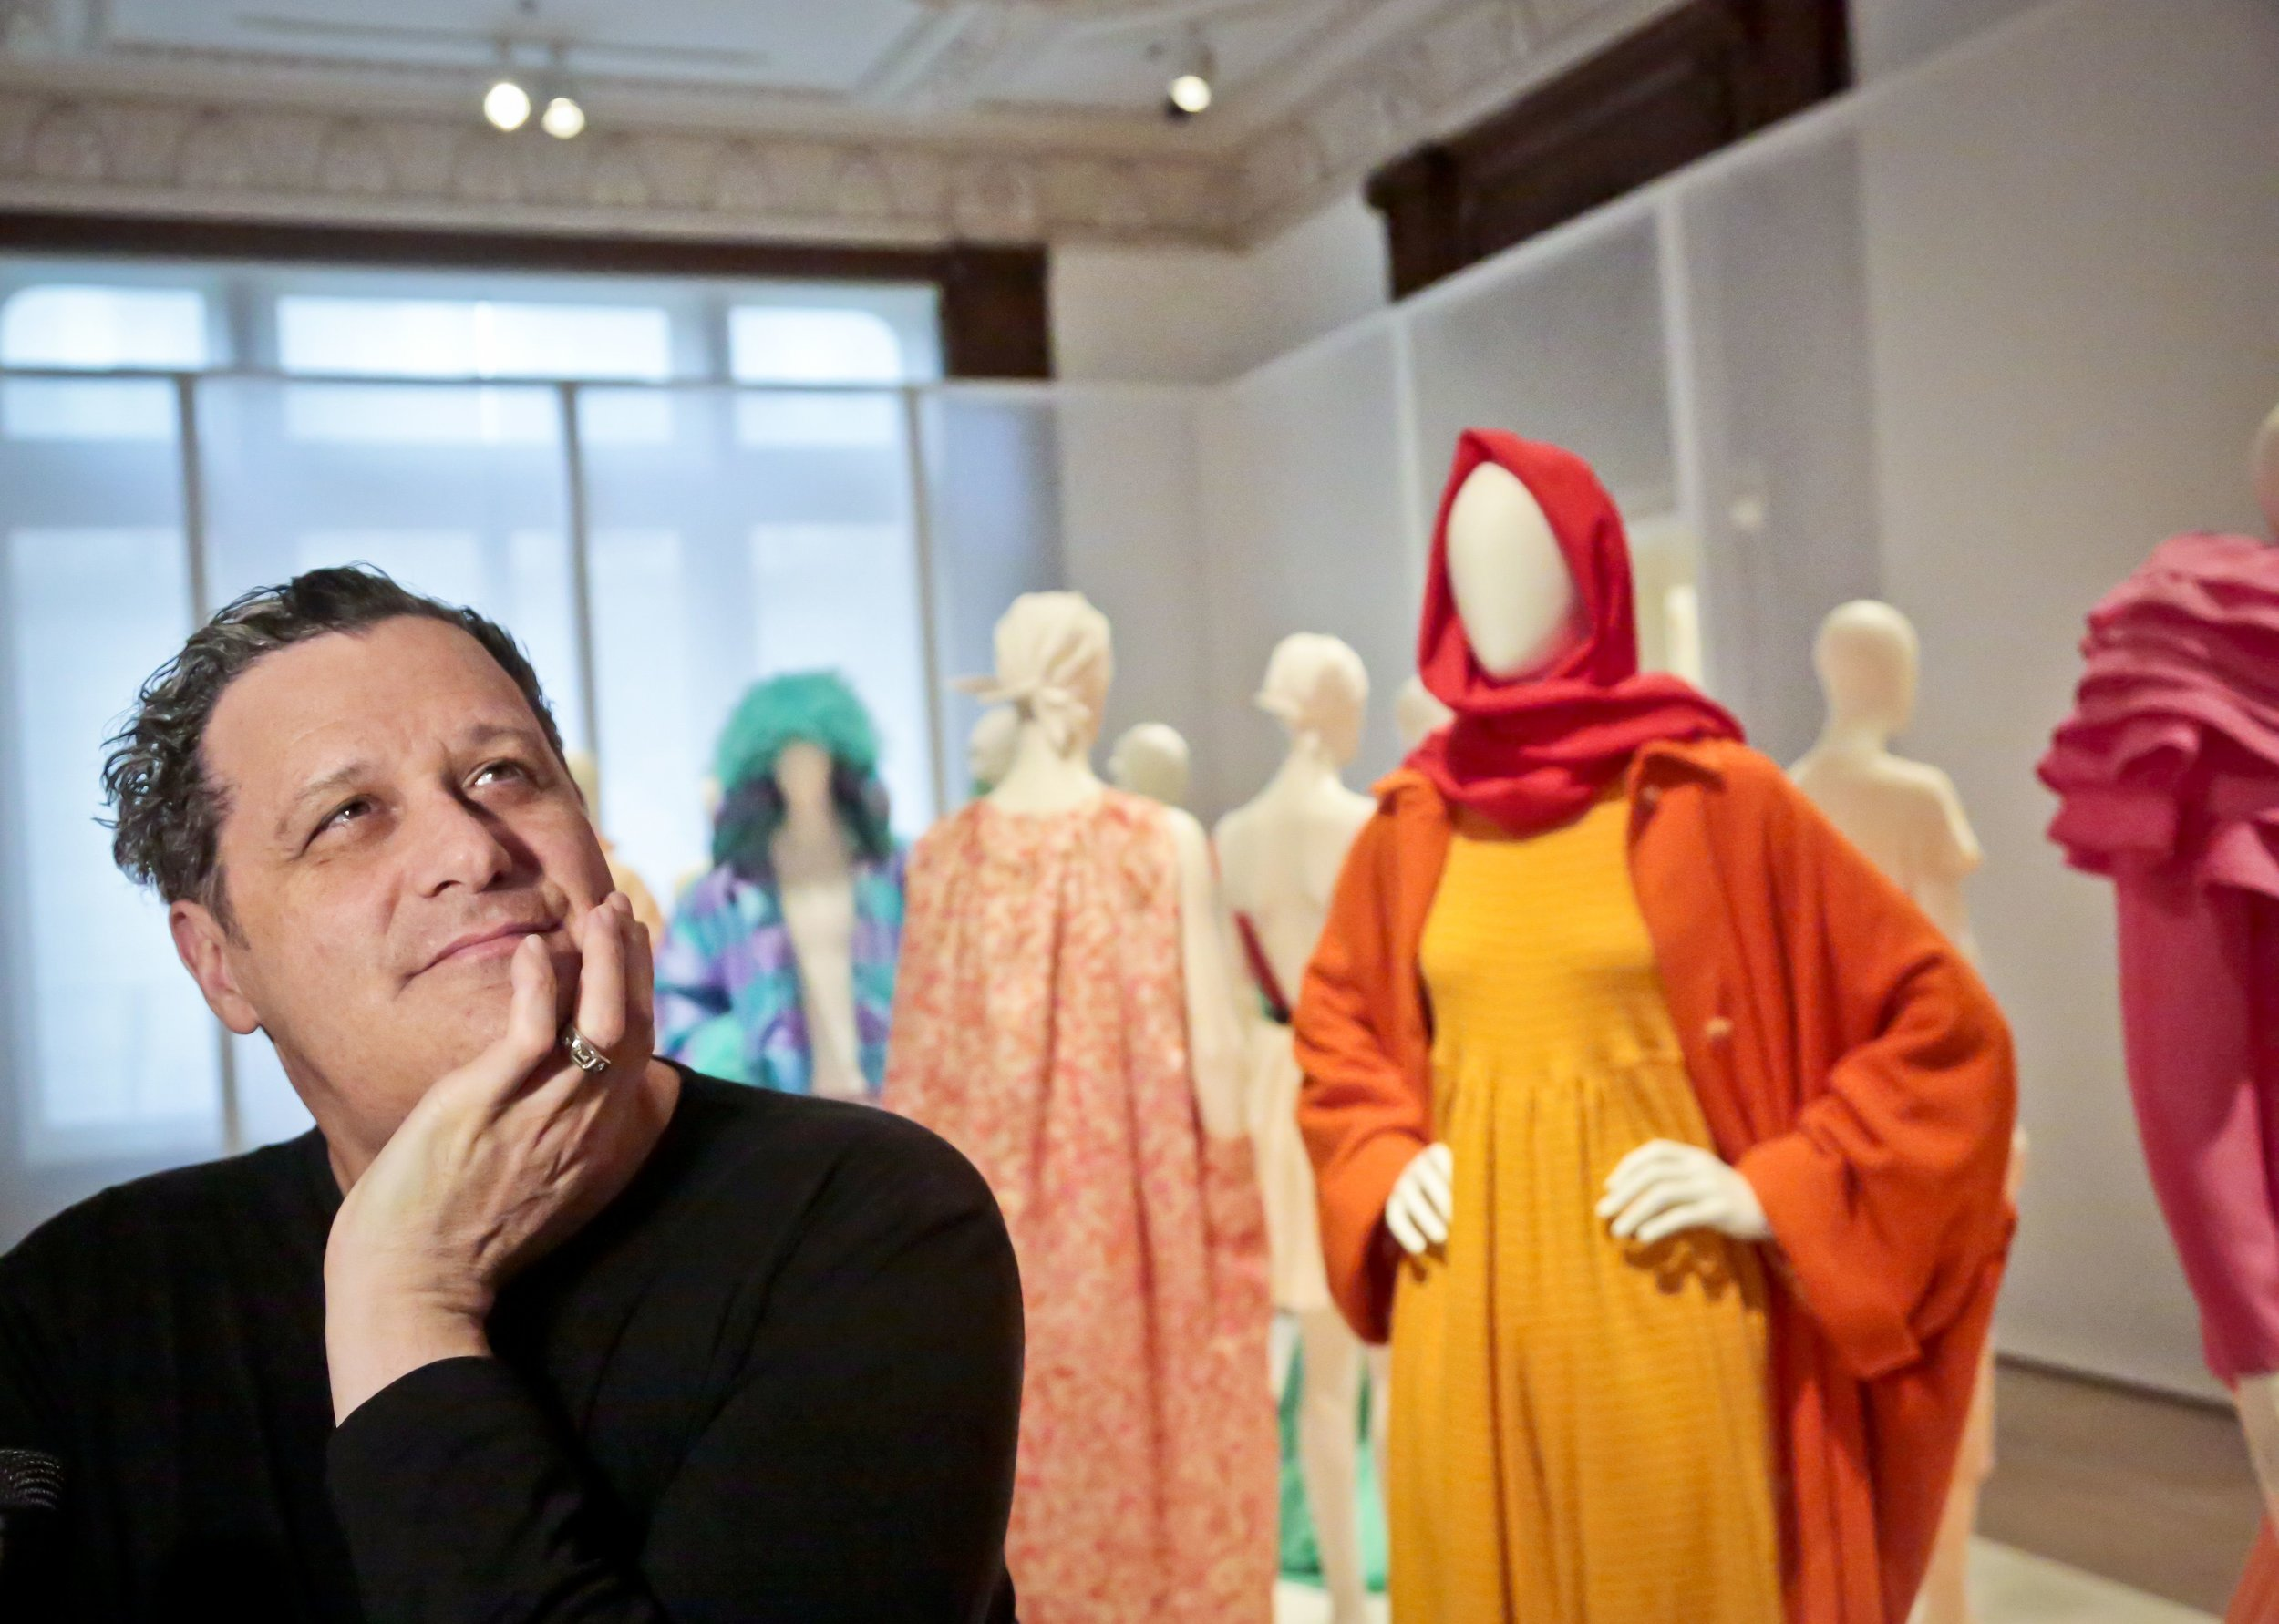 Isaac Mizrahi (born October 14, 1961) is an American  fashion designer , TV presenter, and Chief Designer of the Isaac Mizrahi brand for  Xcel Brands . [1] Based in  New York City , he is best known for his eponymous fashion lines. Mizrahi currently serves as a judge on   Project Runway: All Stars  .  -Wikipedia (photo from  yahoo.com )